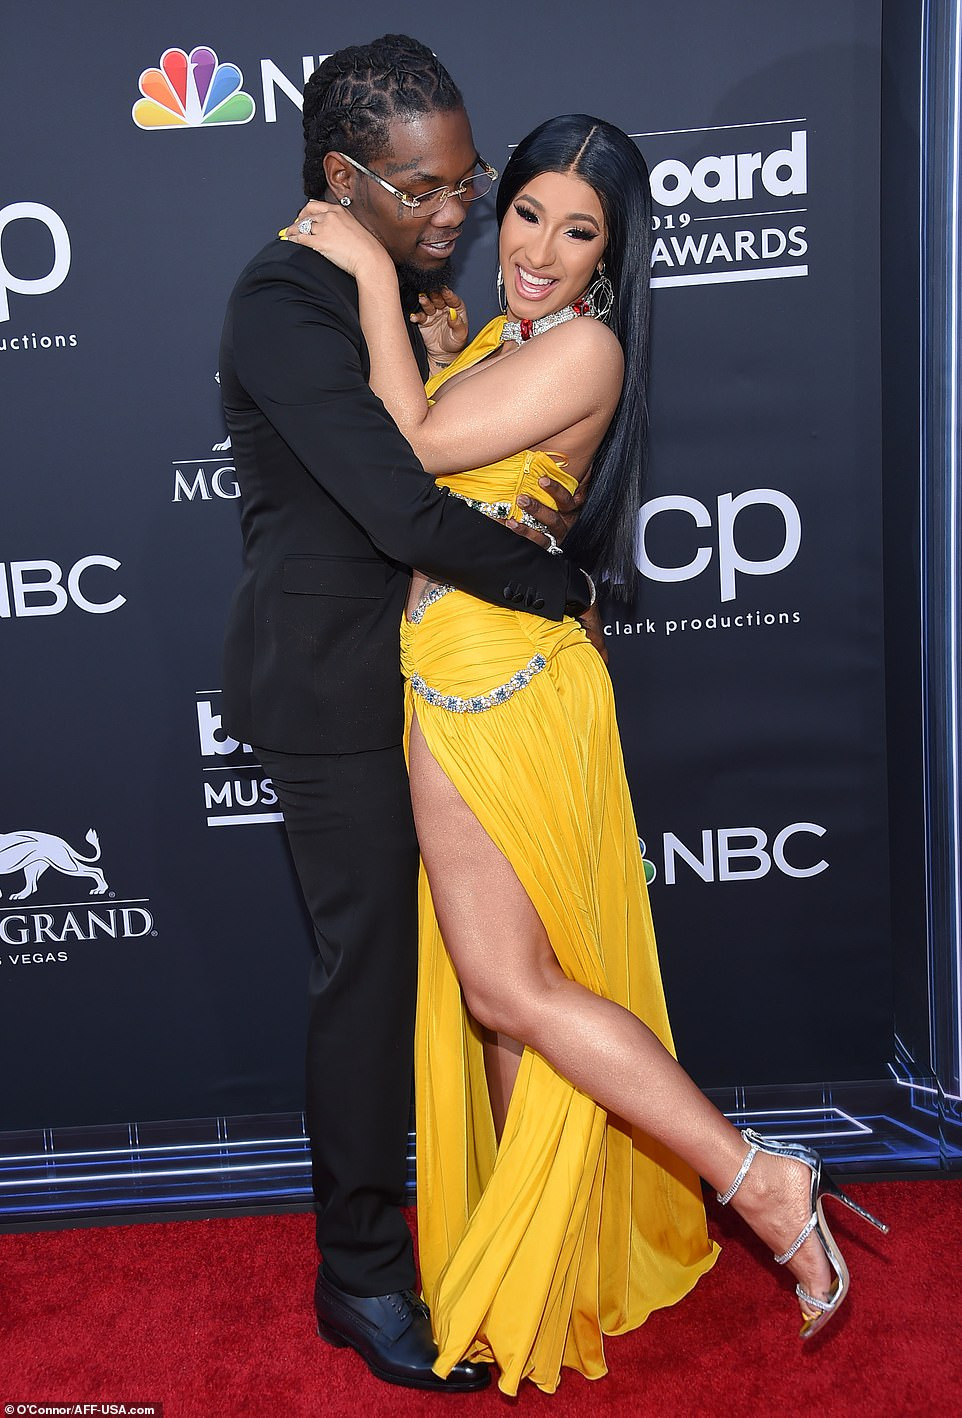 Cardi B Nearly Exposes Her Private Part As Lifts Her Leg